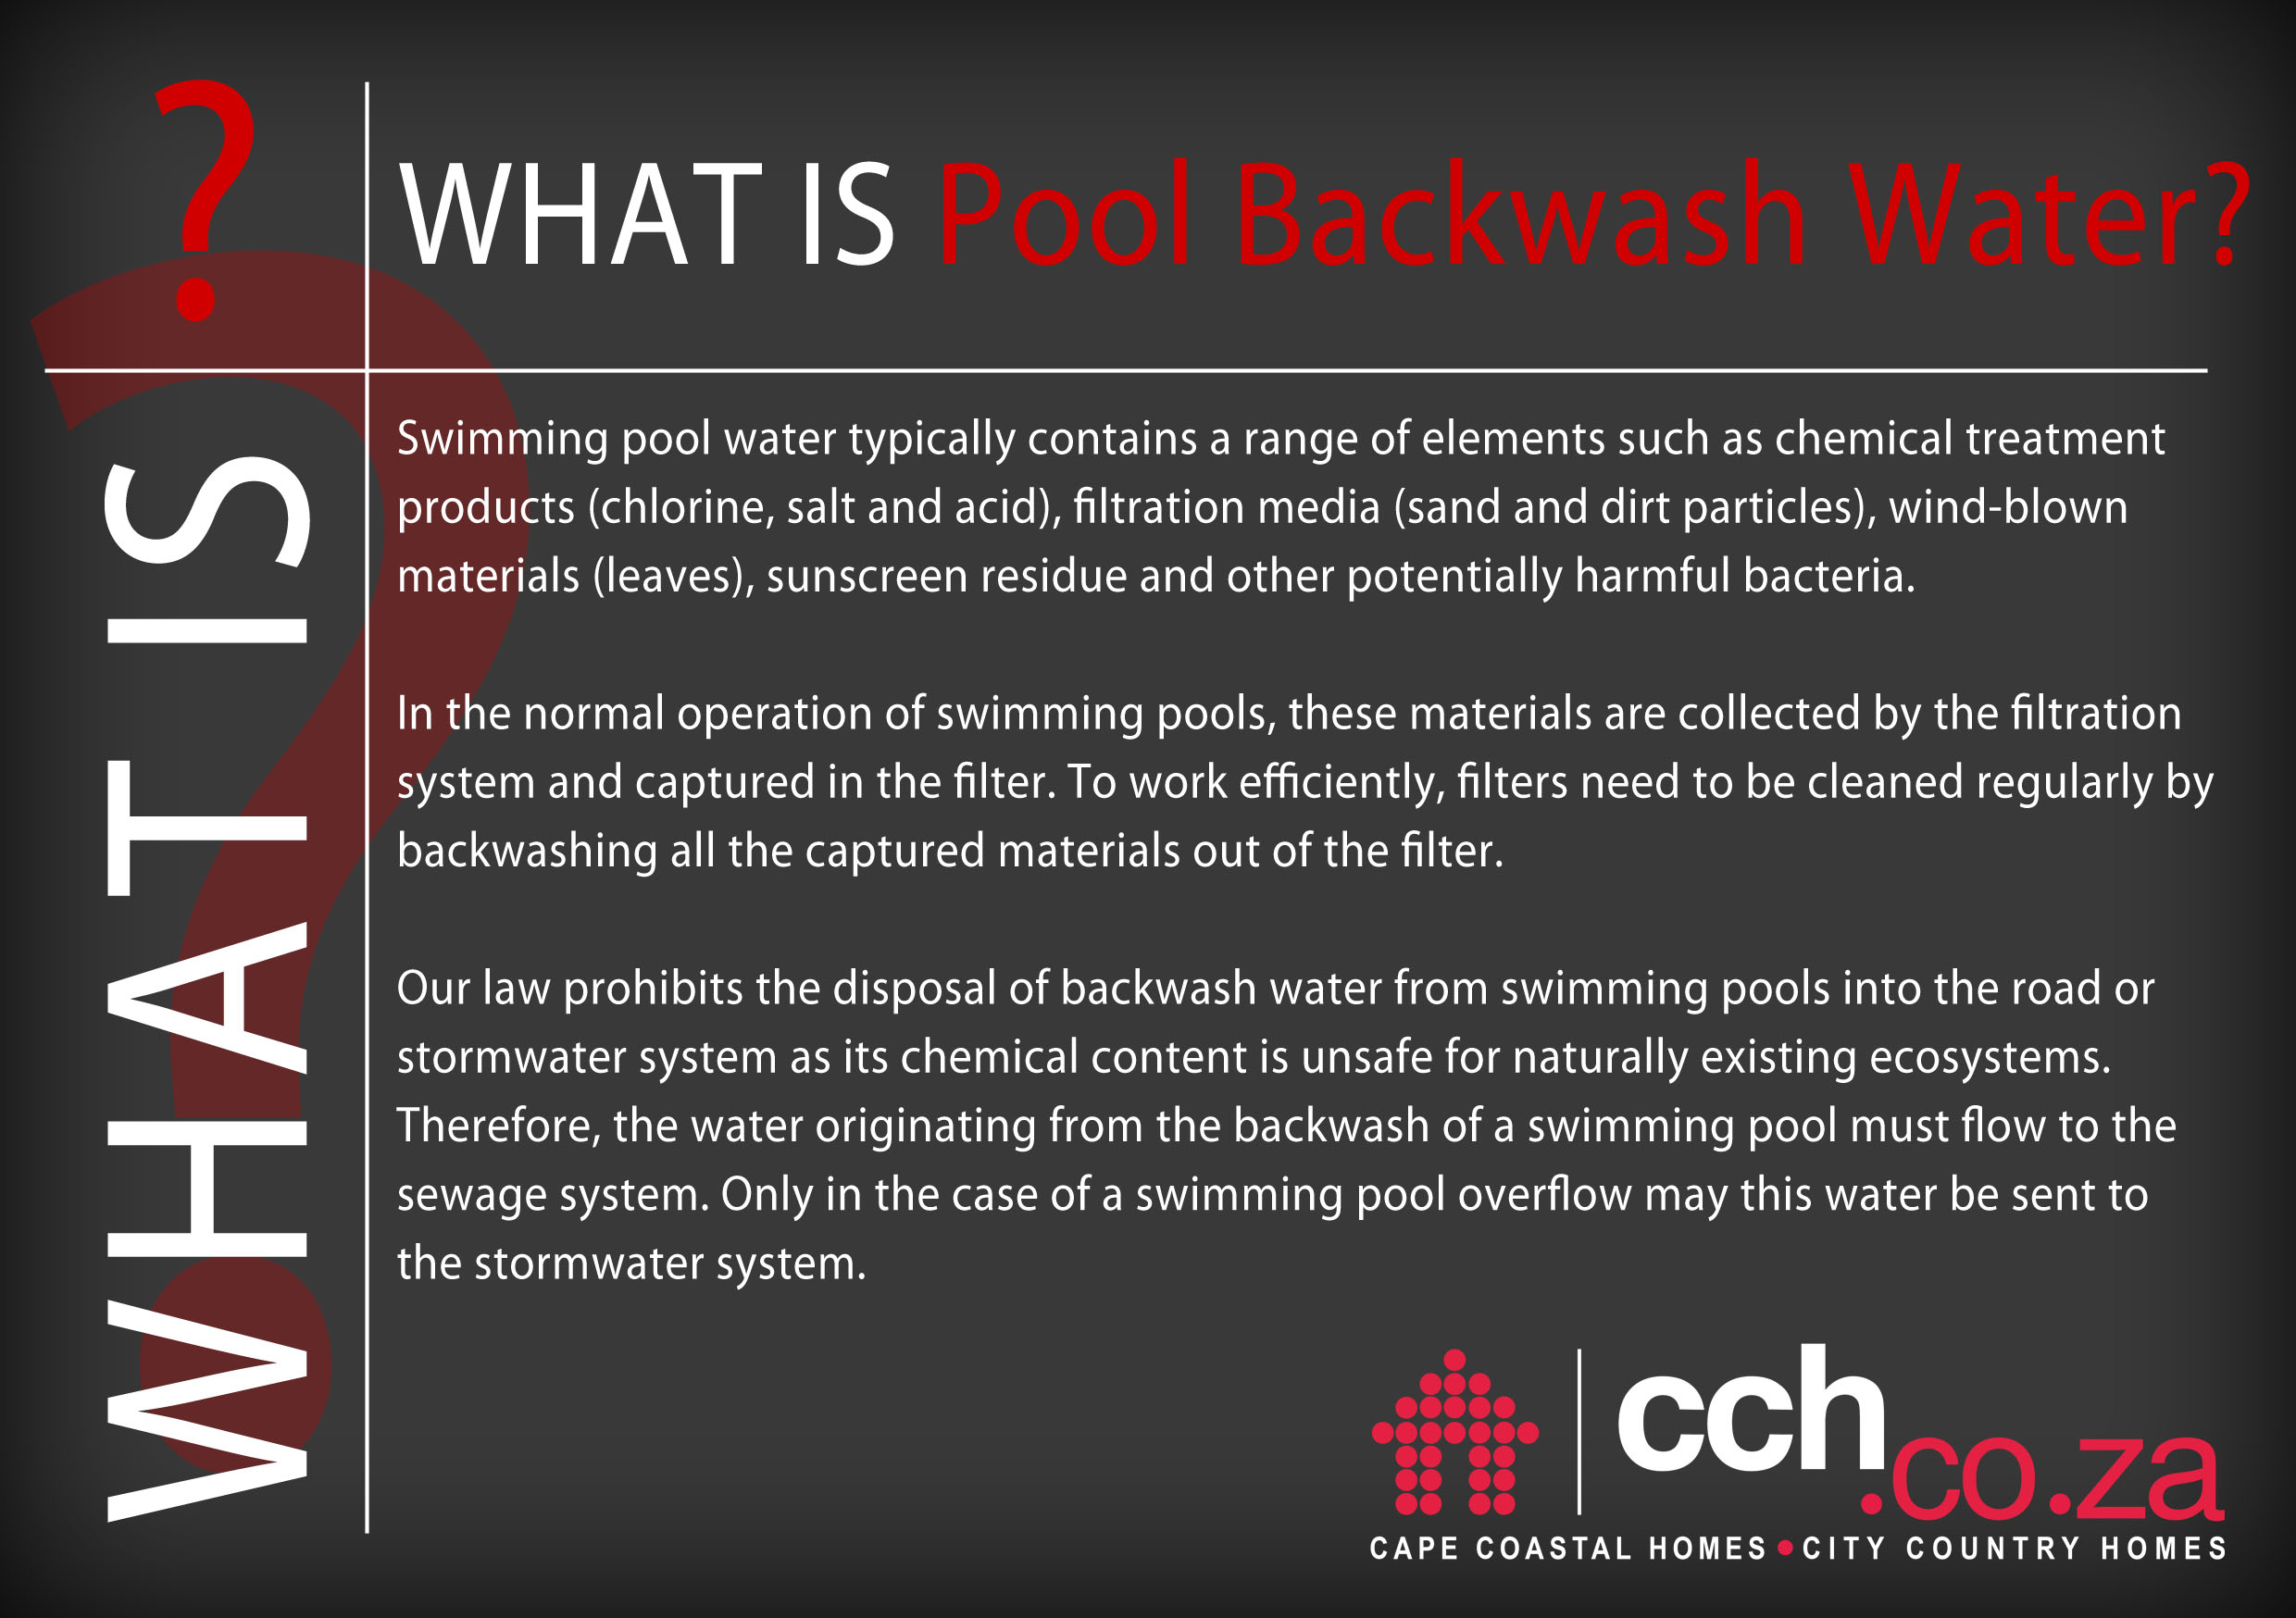 Good To Know - What Is Pool Backwash Water u0026 How To Legally Get Rid Of It?